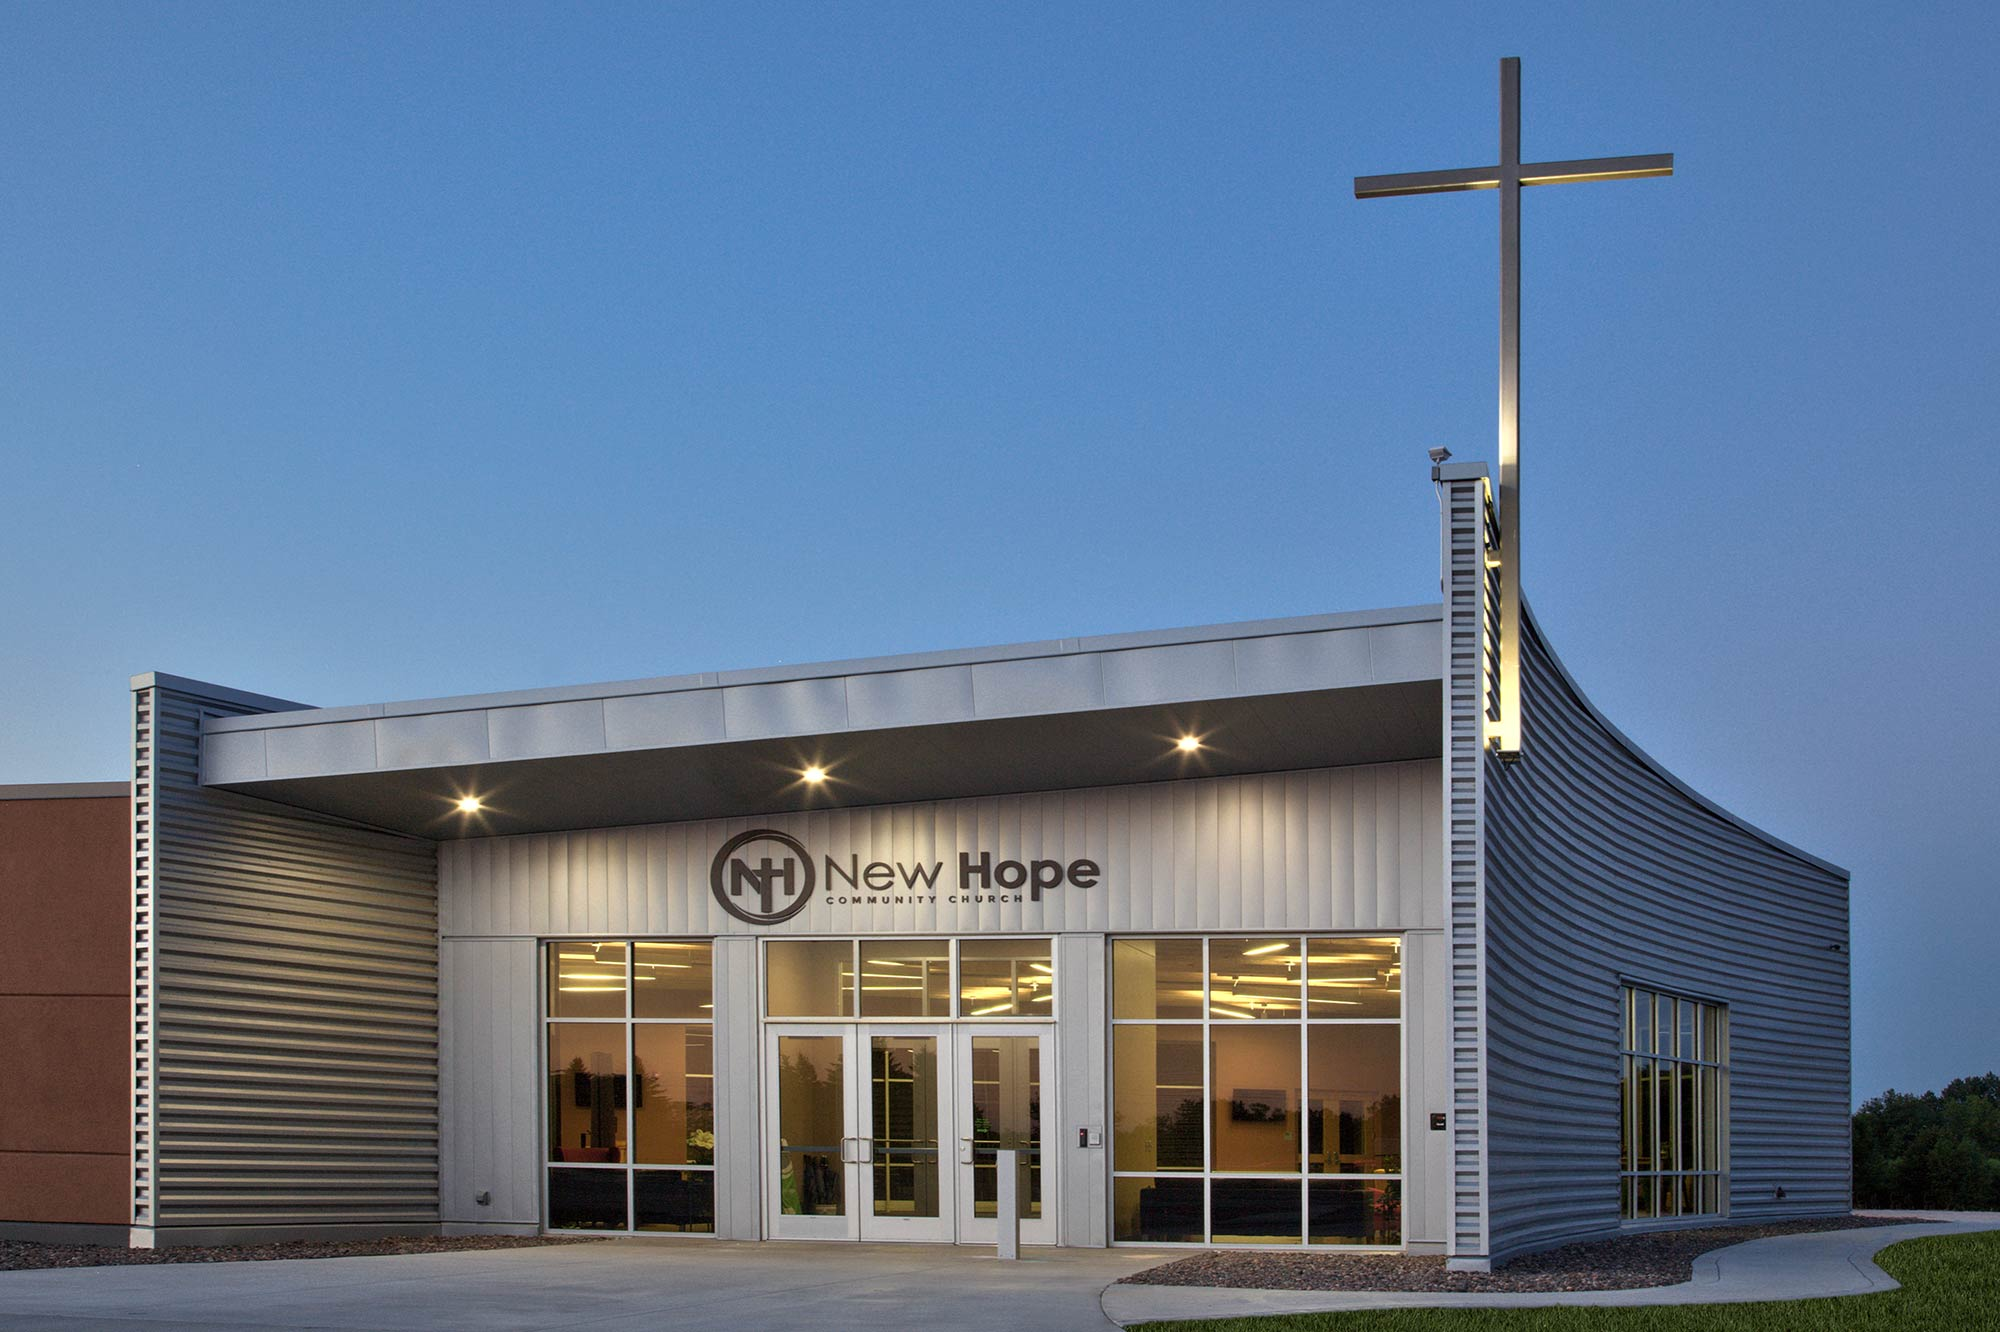 New-Hope-IMG_3186-HDR